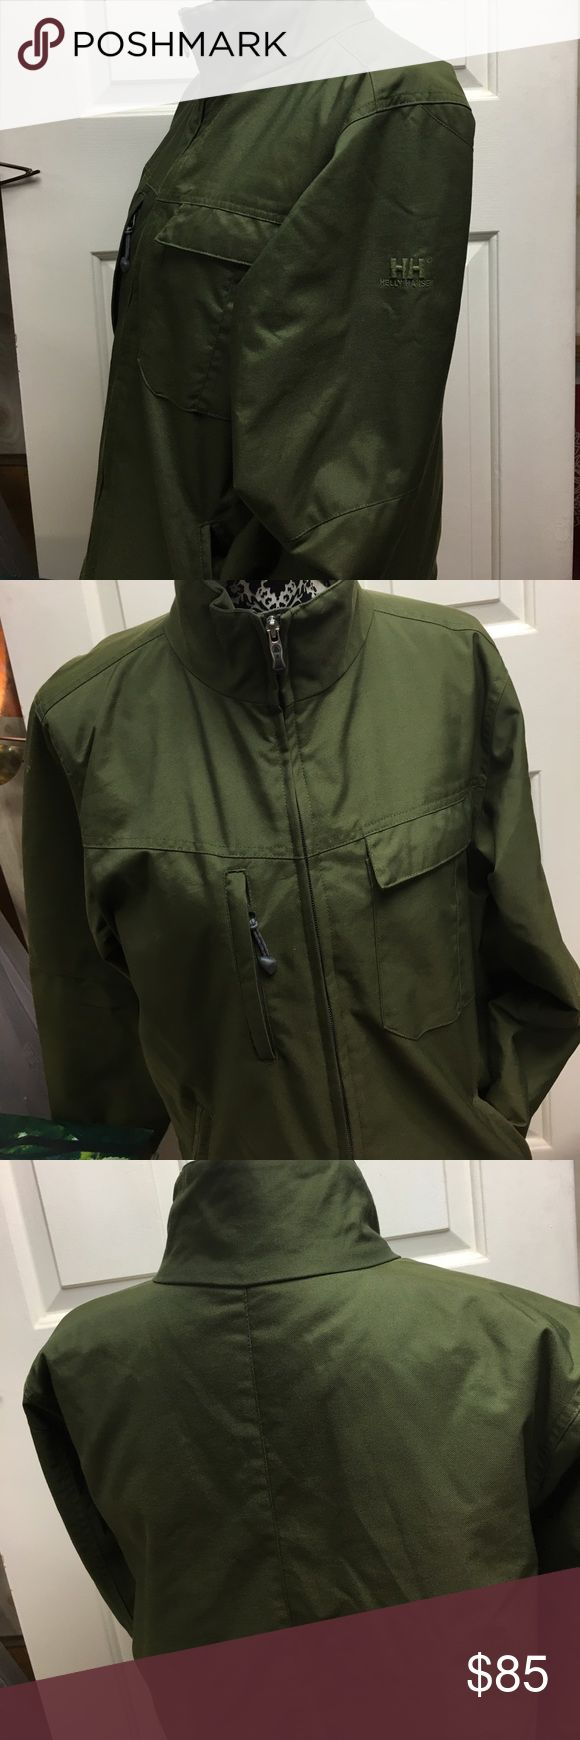 HELLY HANSEN MEDIUM OLIVE  JACKET Brand new from a sample sale . Measures 20 inches underarm to underarm and 26 inches in length Helly Hansen Jackets & Coats Utility Jackets